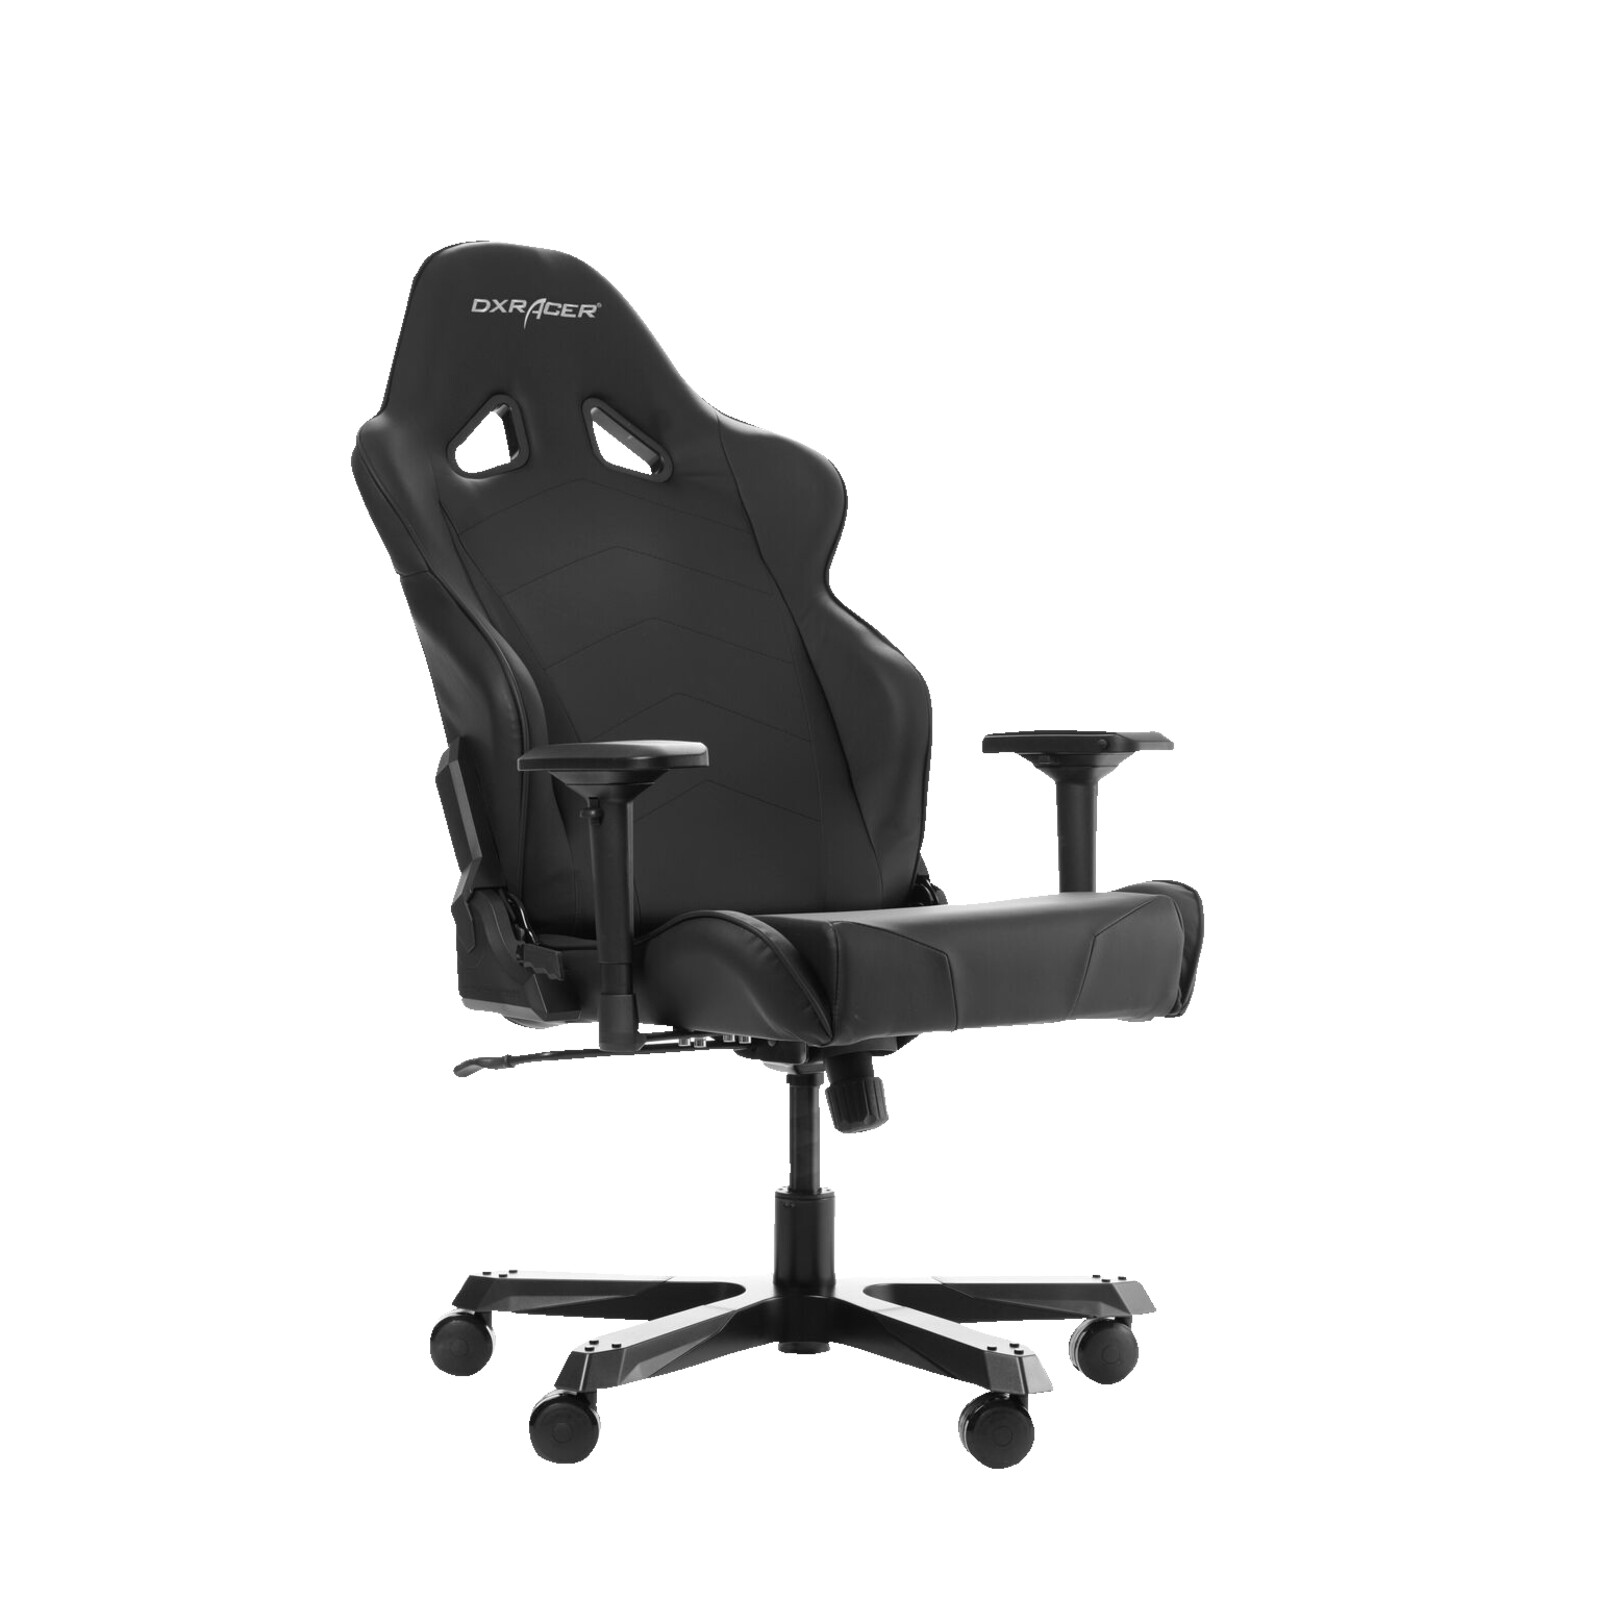 Dxracer Sessel Details Zu Dxracer Tank T29 Gaming Chair Black Gaming Stuhl Schwarz